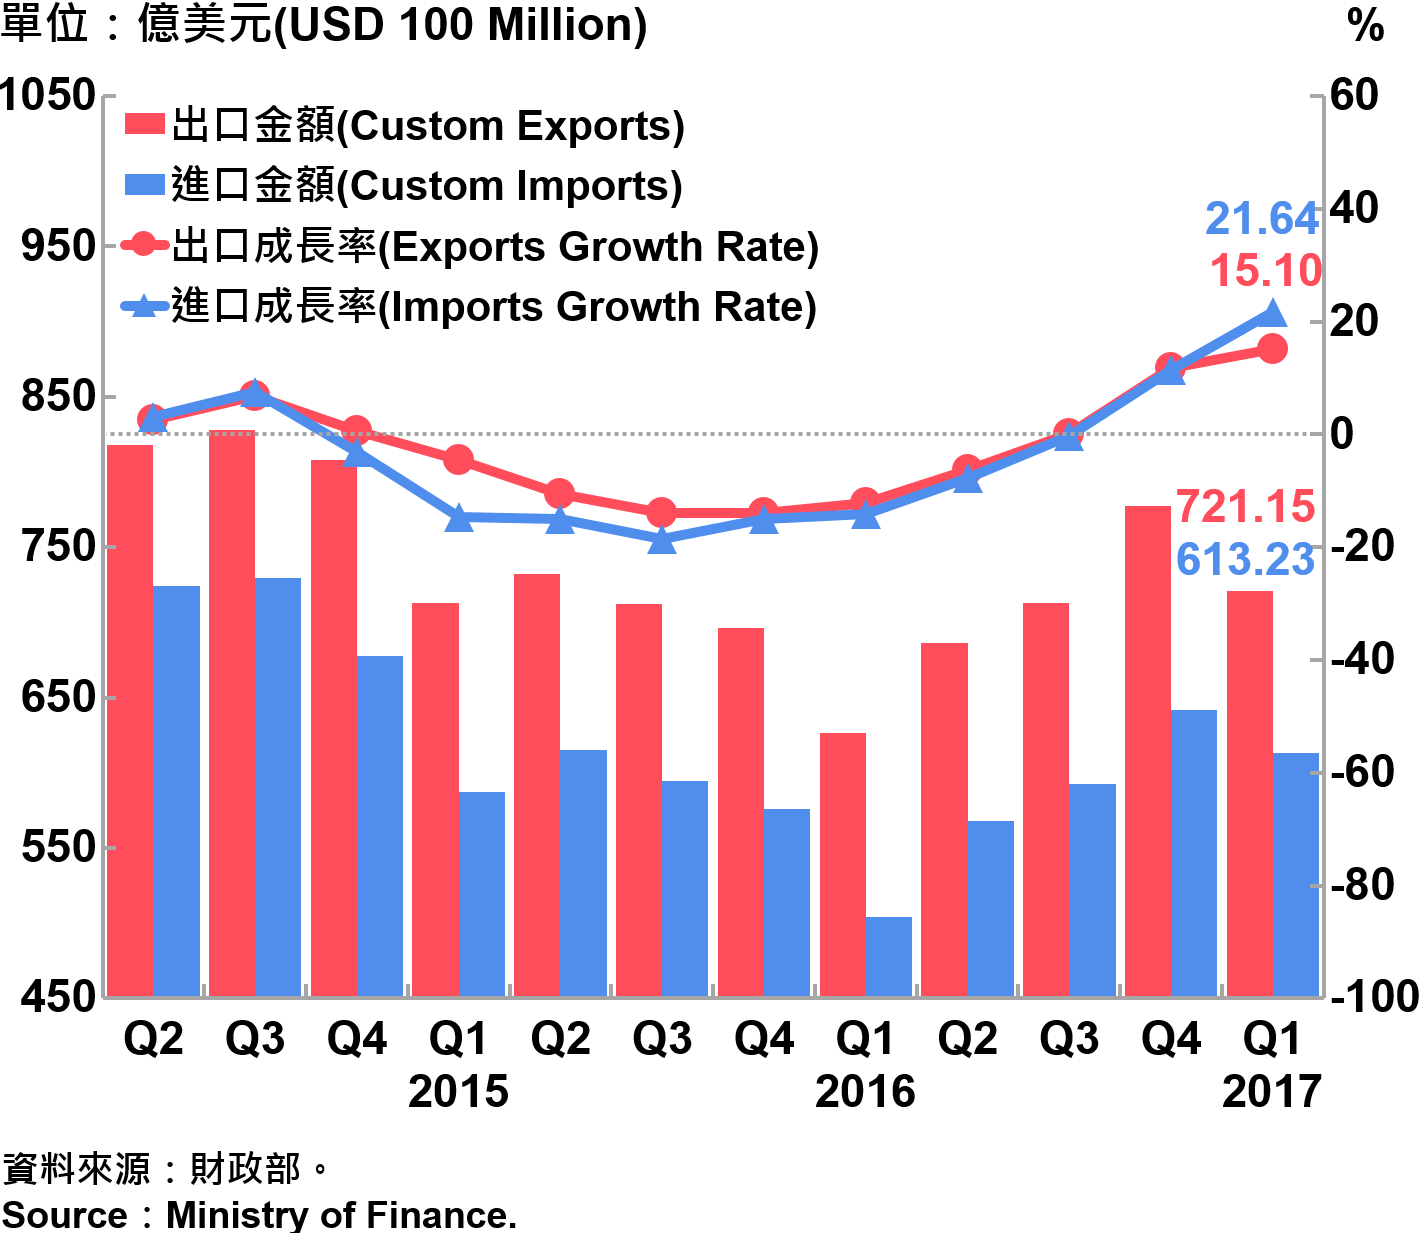 圖3 臺灣海關進出口金額及成長率 Custom Exports, Custom Imports and Growth Rate in Taiwan